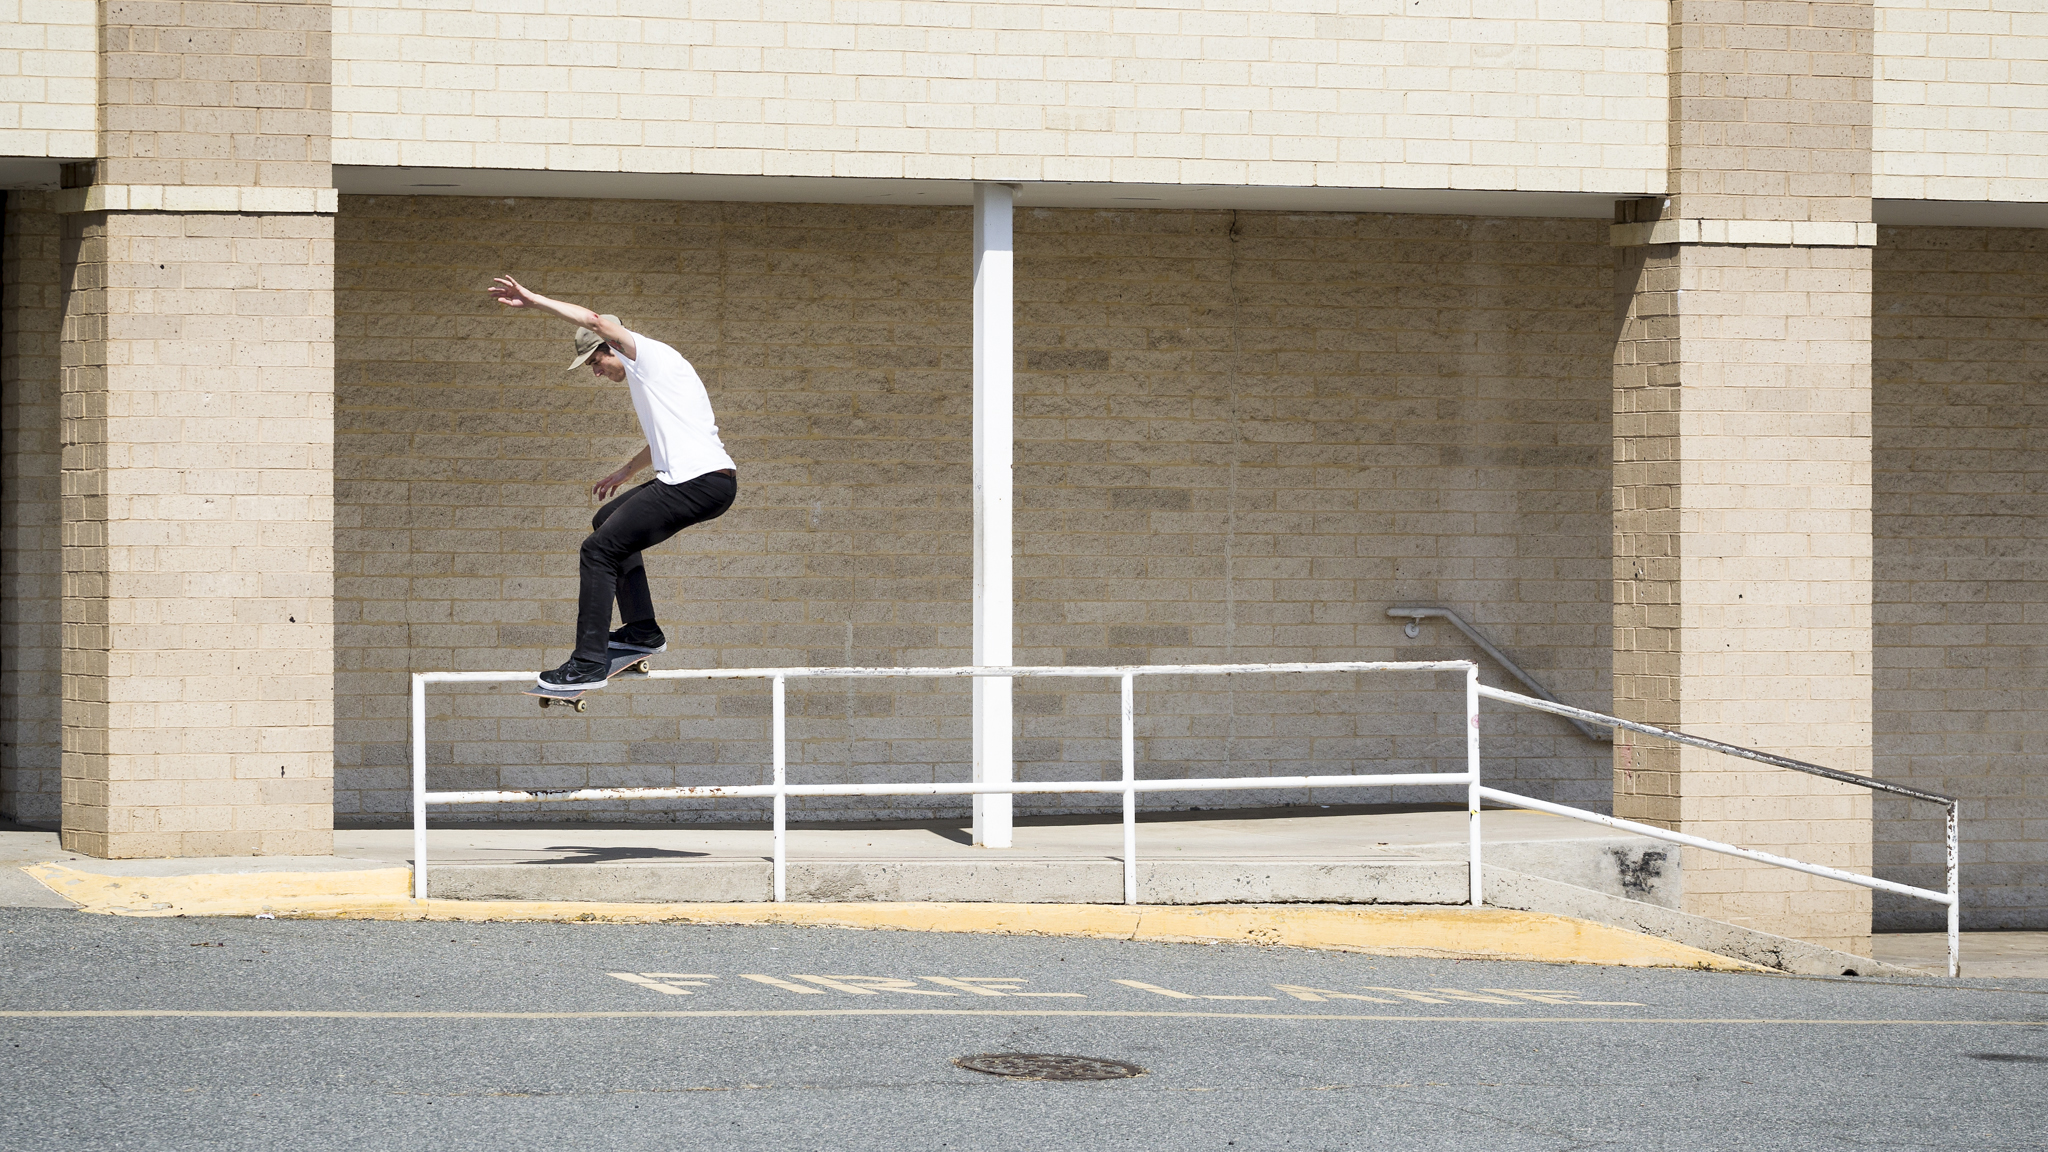 Feeble grind from Daryl Angel, as seen in the Nike SB Chronicles Volume 2 video.